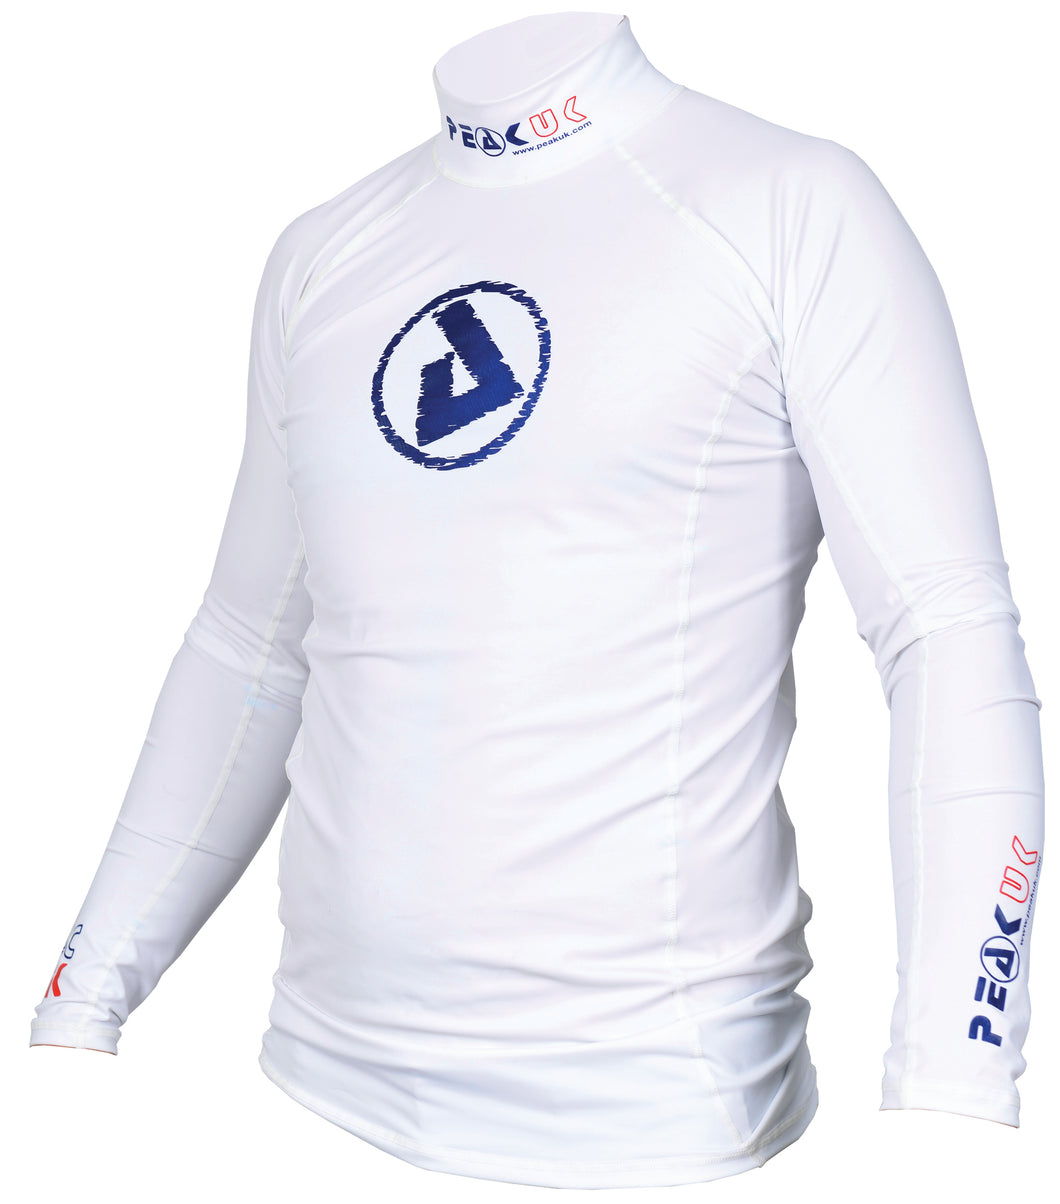 Tecwik Long Sleeved